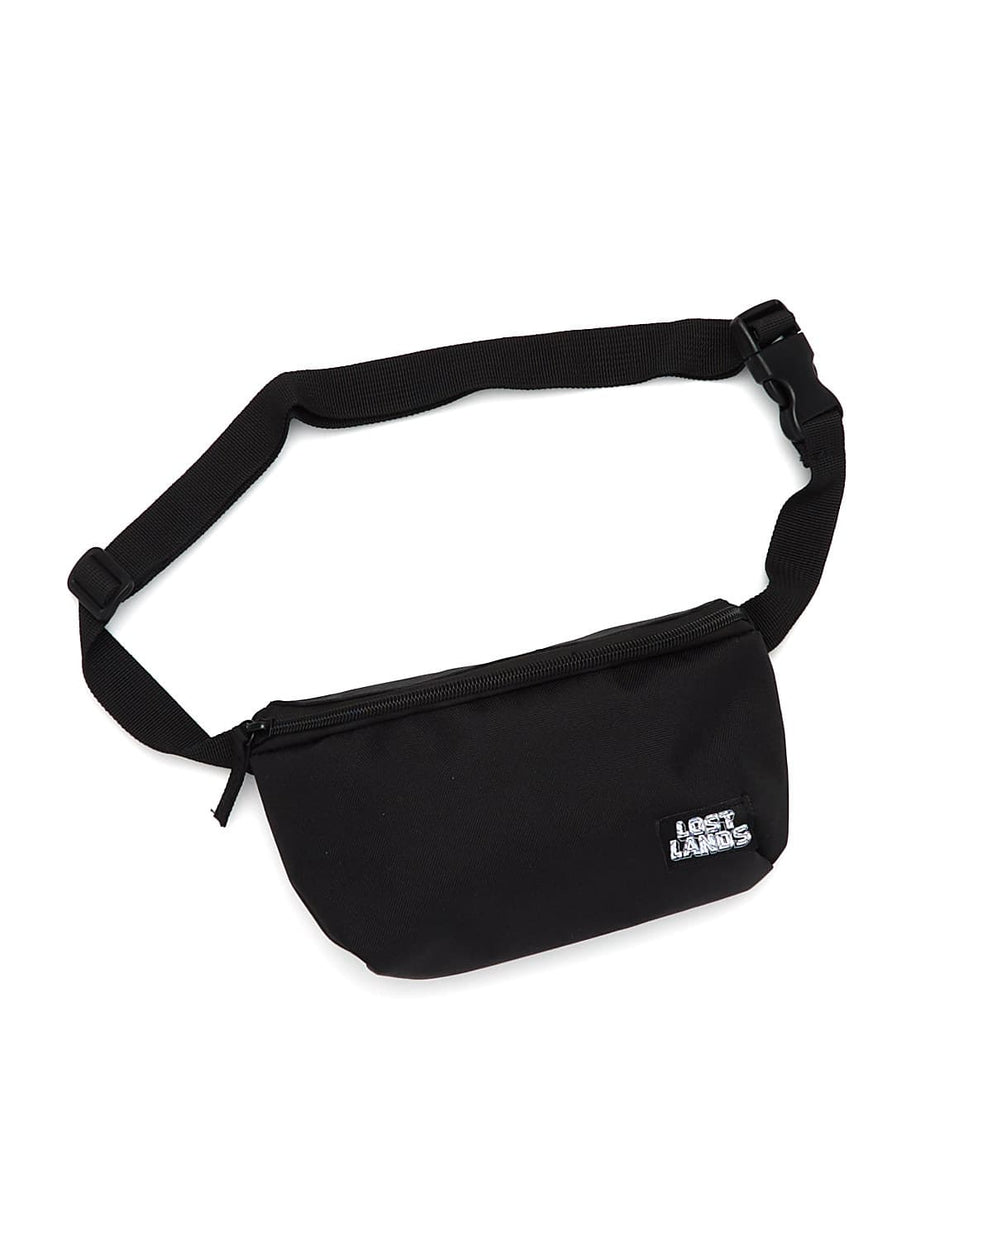 Official Lost Lands Fanny Pack